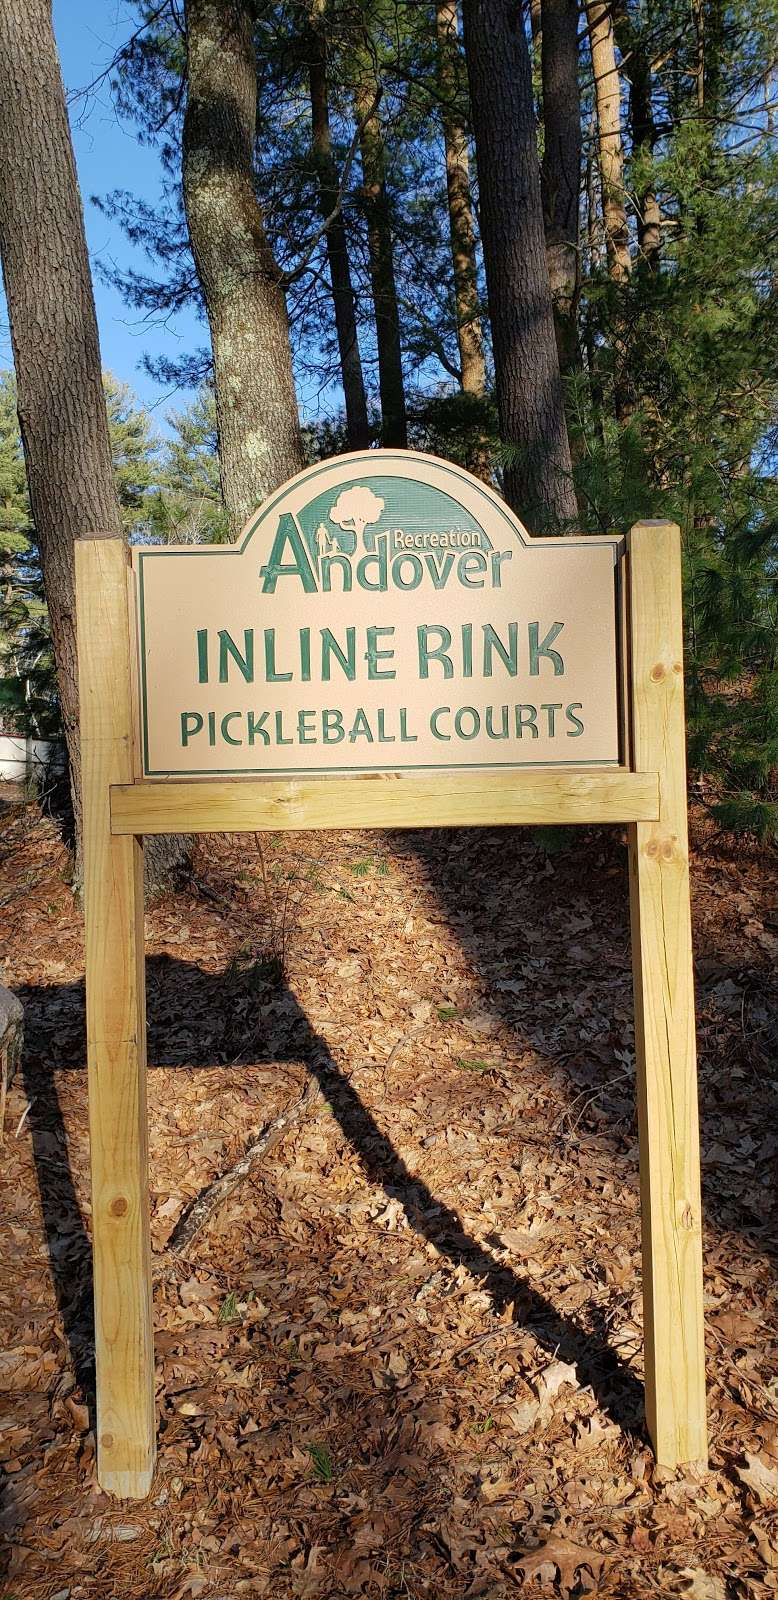 Andover Recreation Park - park  | Photo 8 of 10 | Address: 147 Abbot St, Andover, MA 01810, USA | Phone: (978) 623-8340